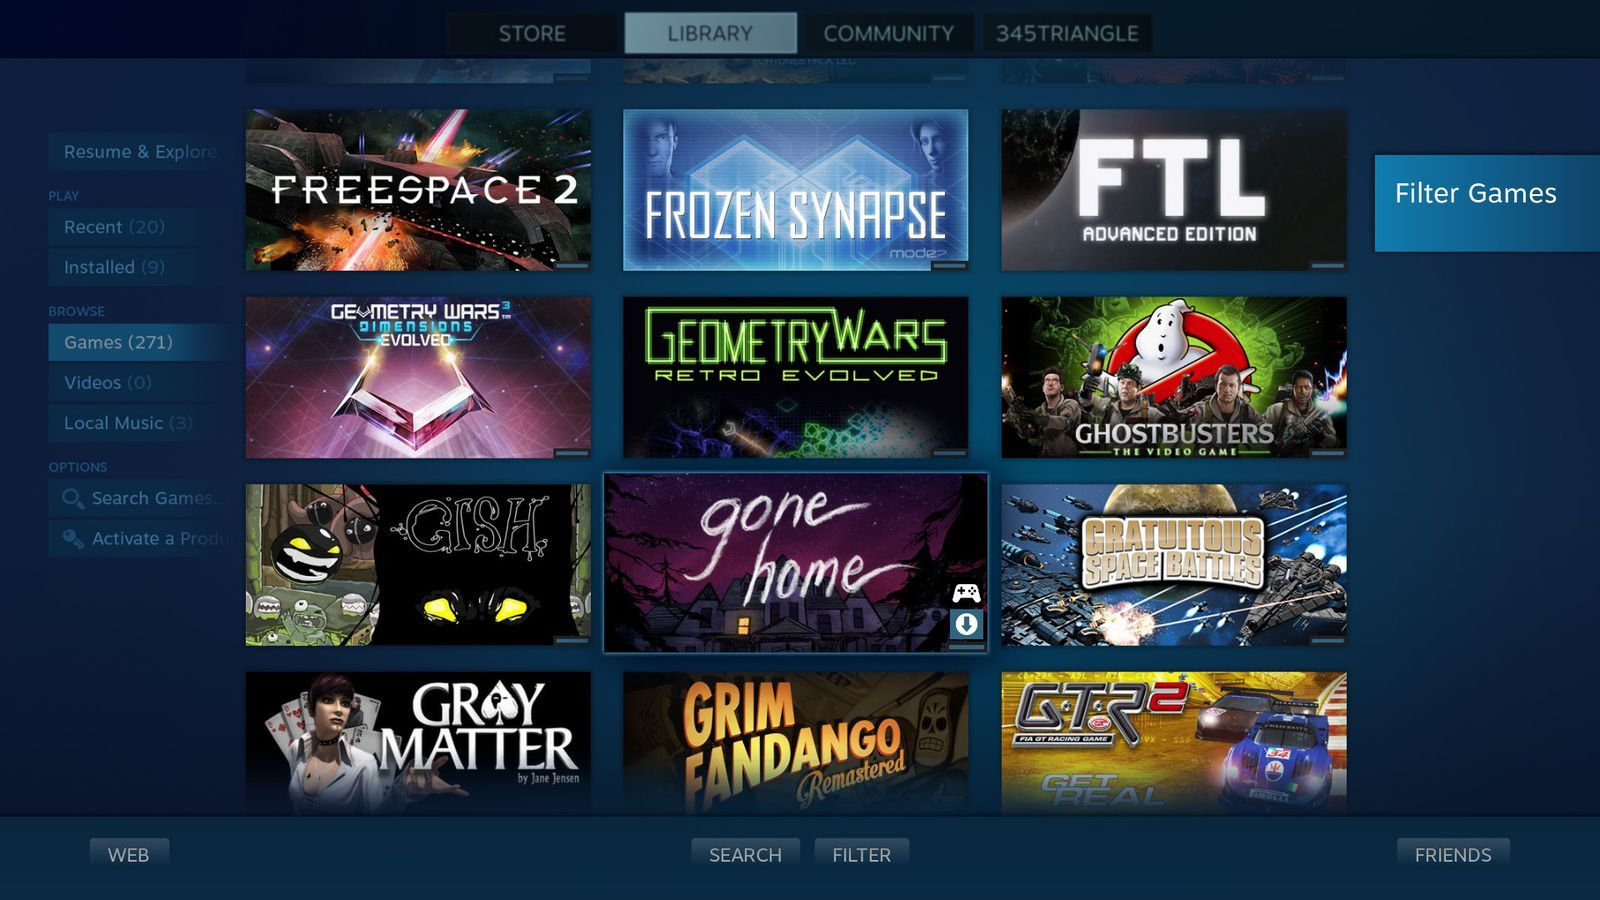 You can now stream Steam games to play on your Samsung